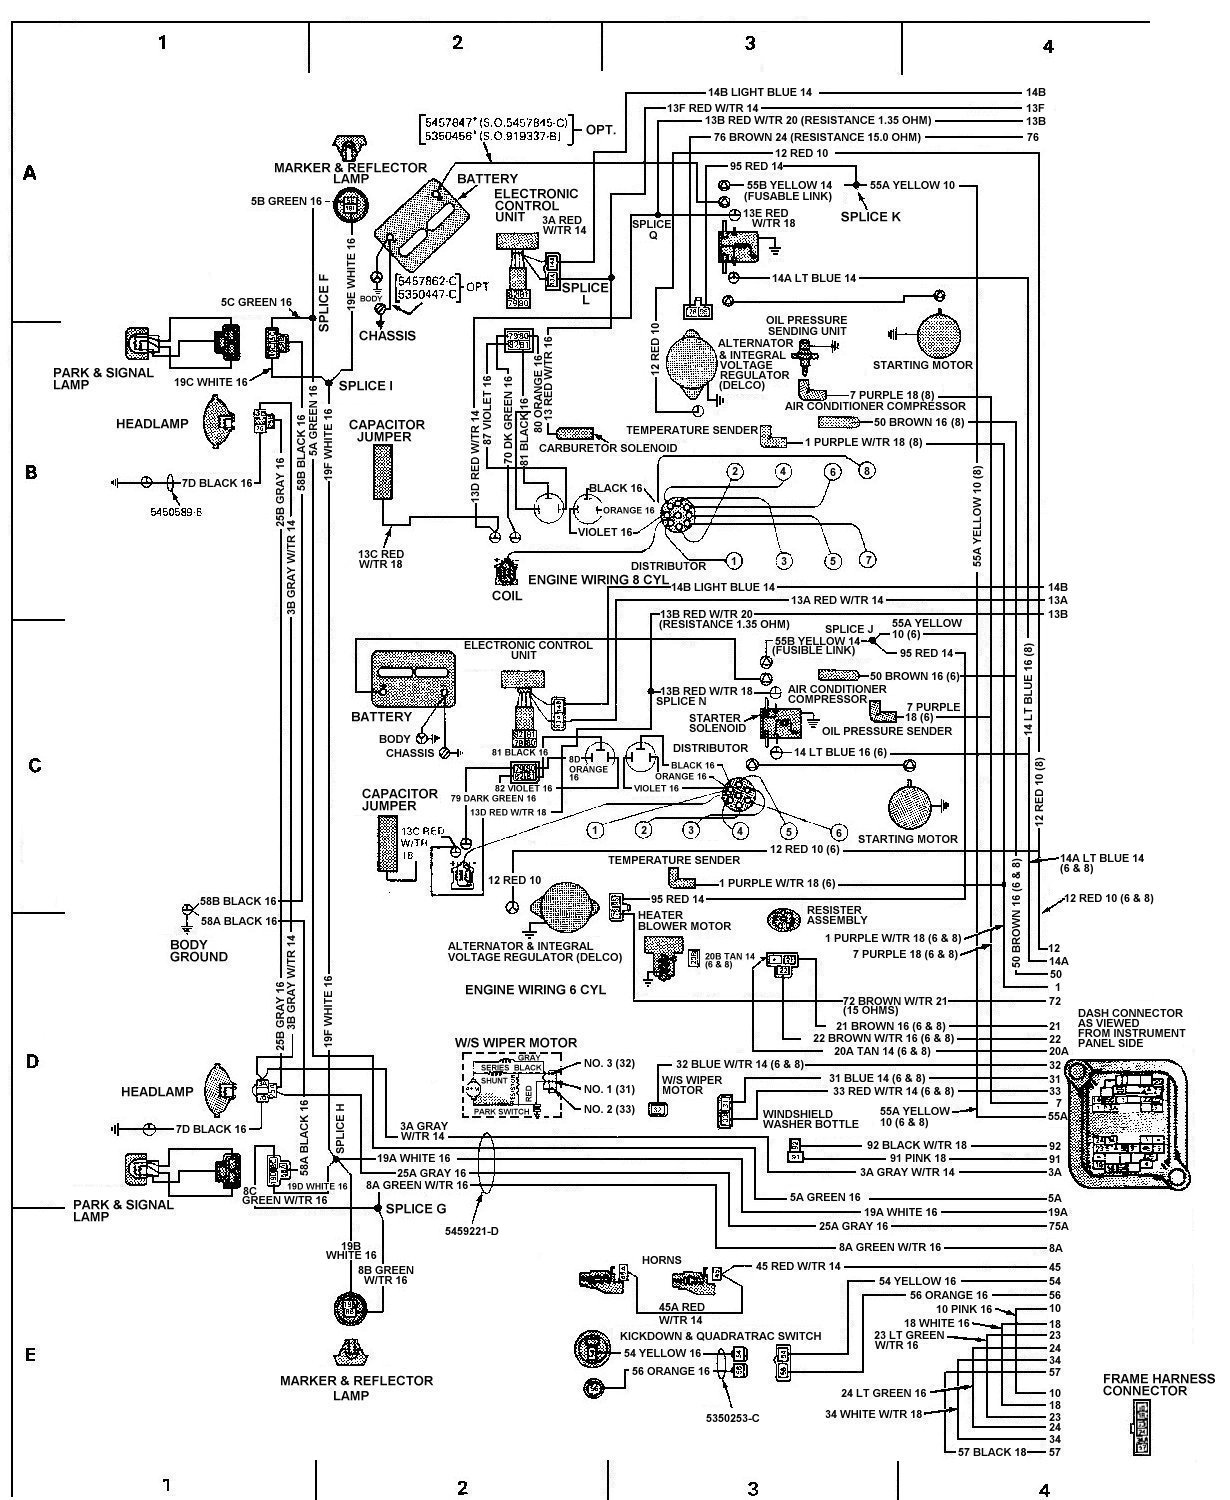 78_FSJ_WiringDiagramPage7 tom 'oljeep' collins fsj wiring page 1990 corvette a/c wiring diagram at gsmportal.co